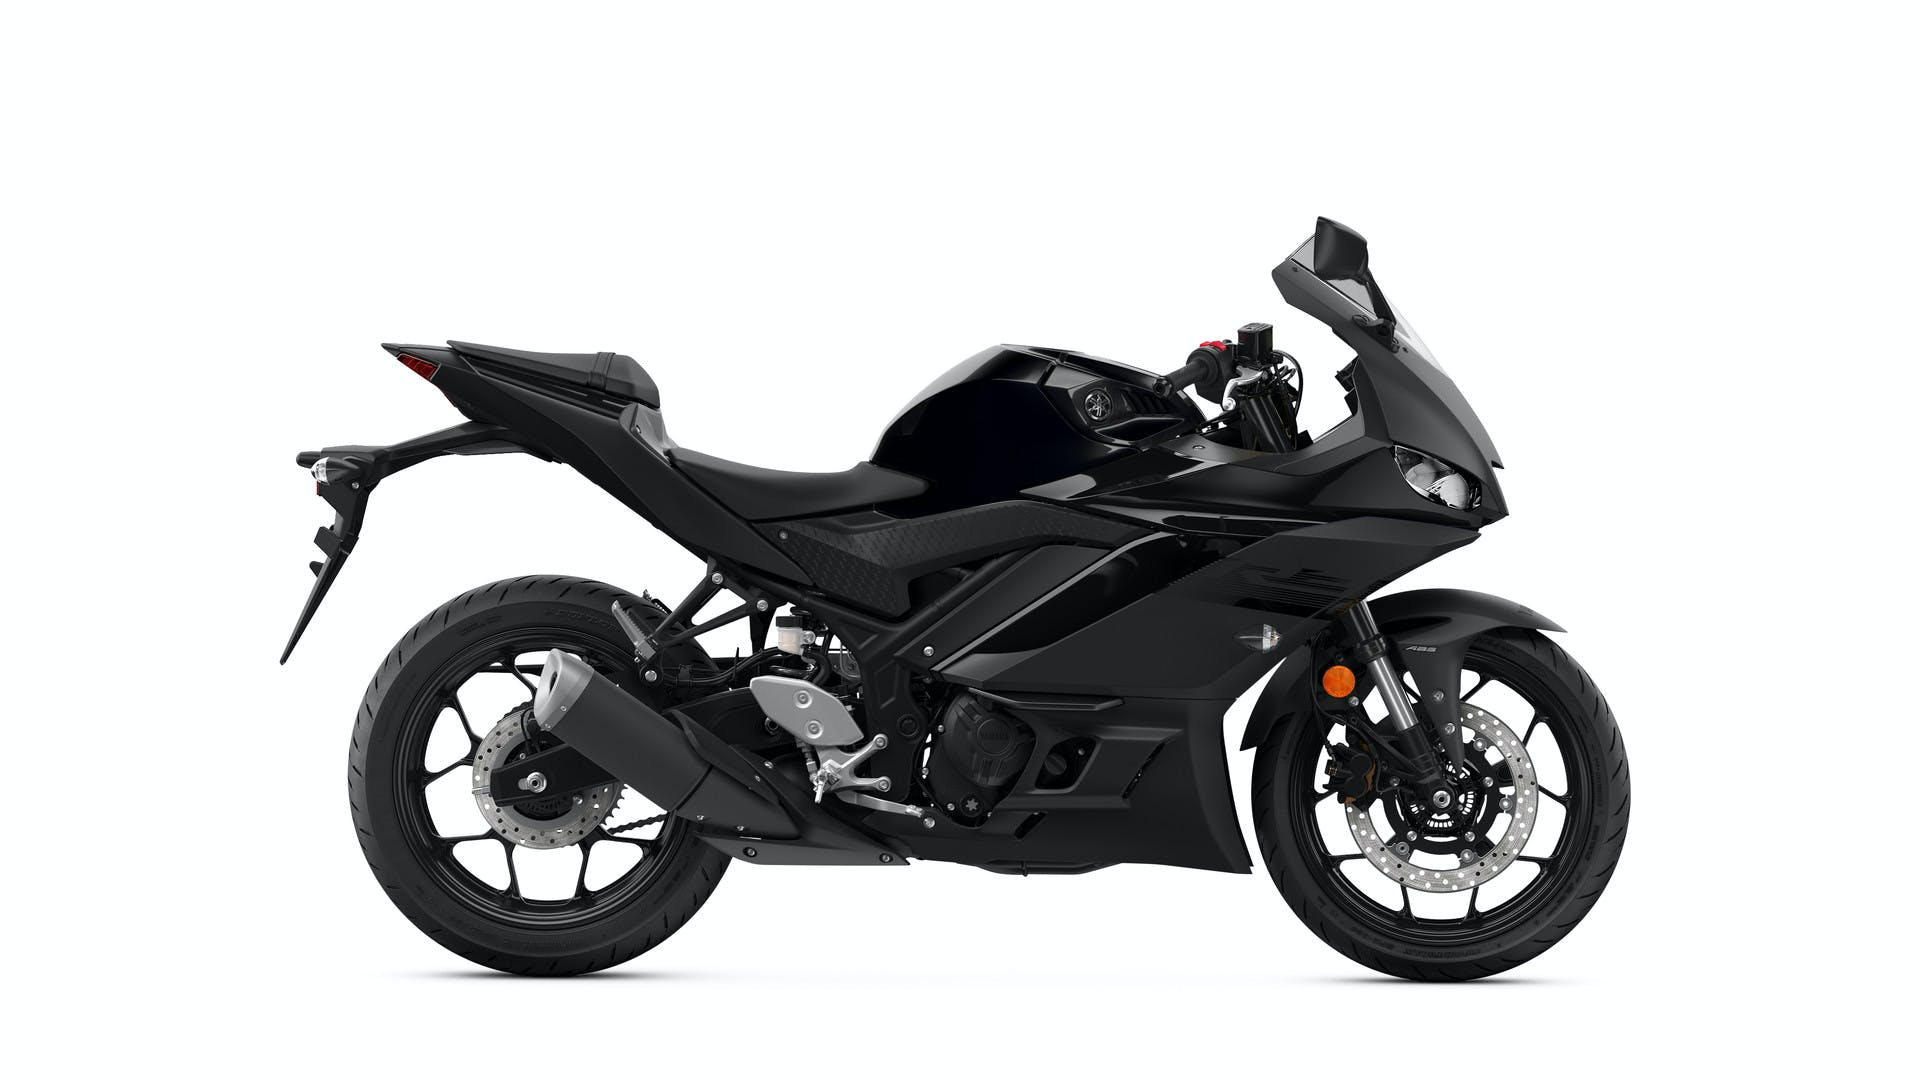 Yamaha YZF-R3 in matte stealth black colour